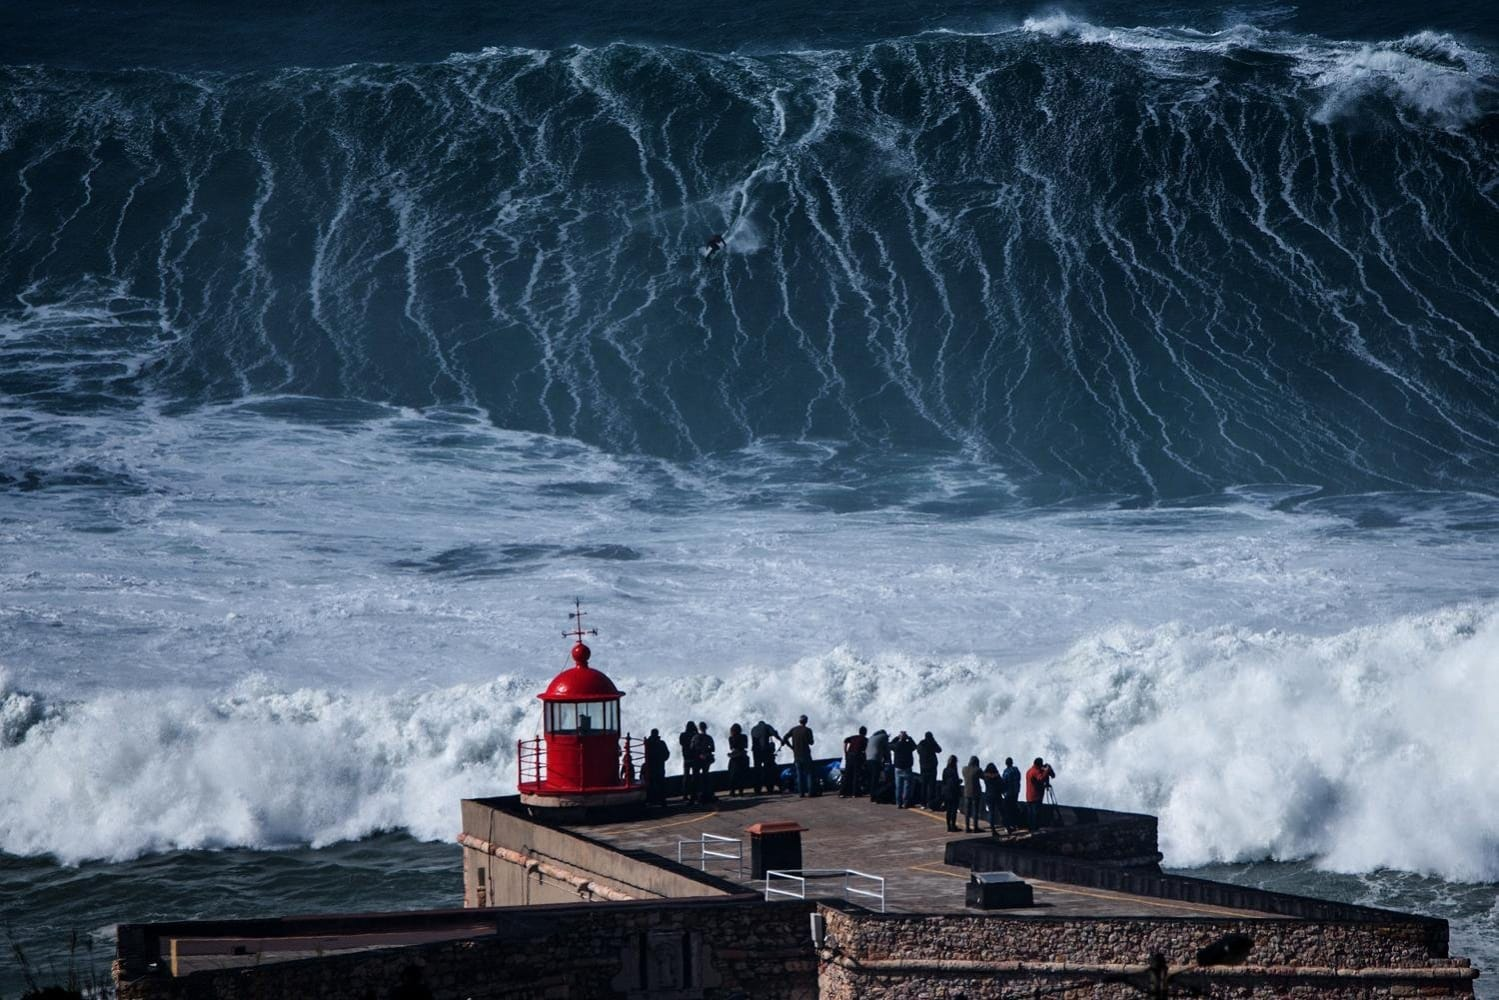 Big wave surfing on TV: 60 Minutes Nazare *Intervew*